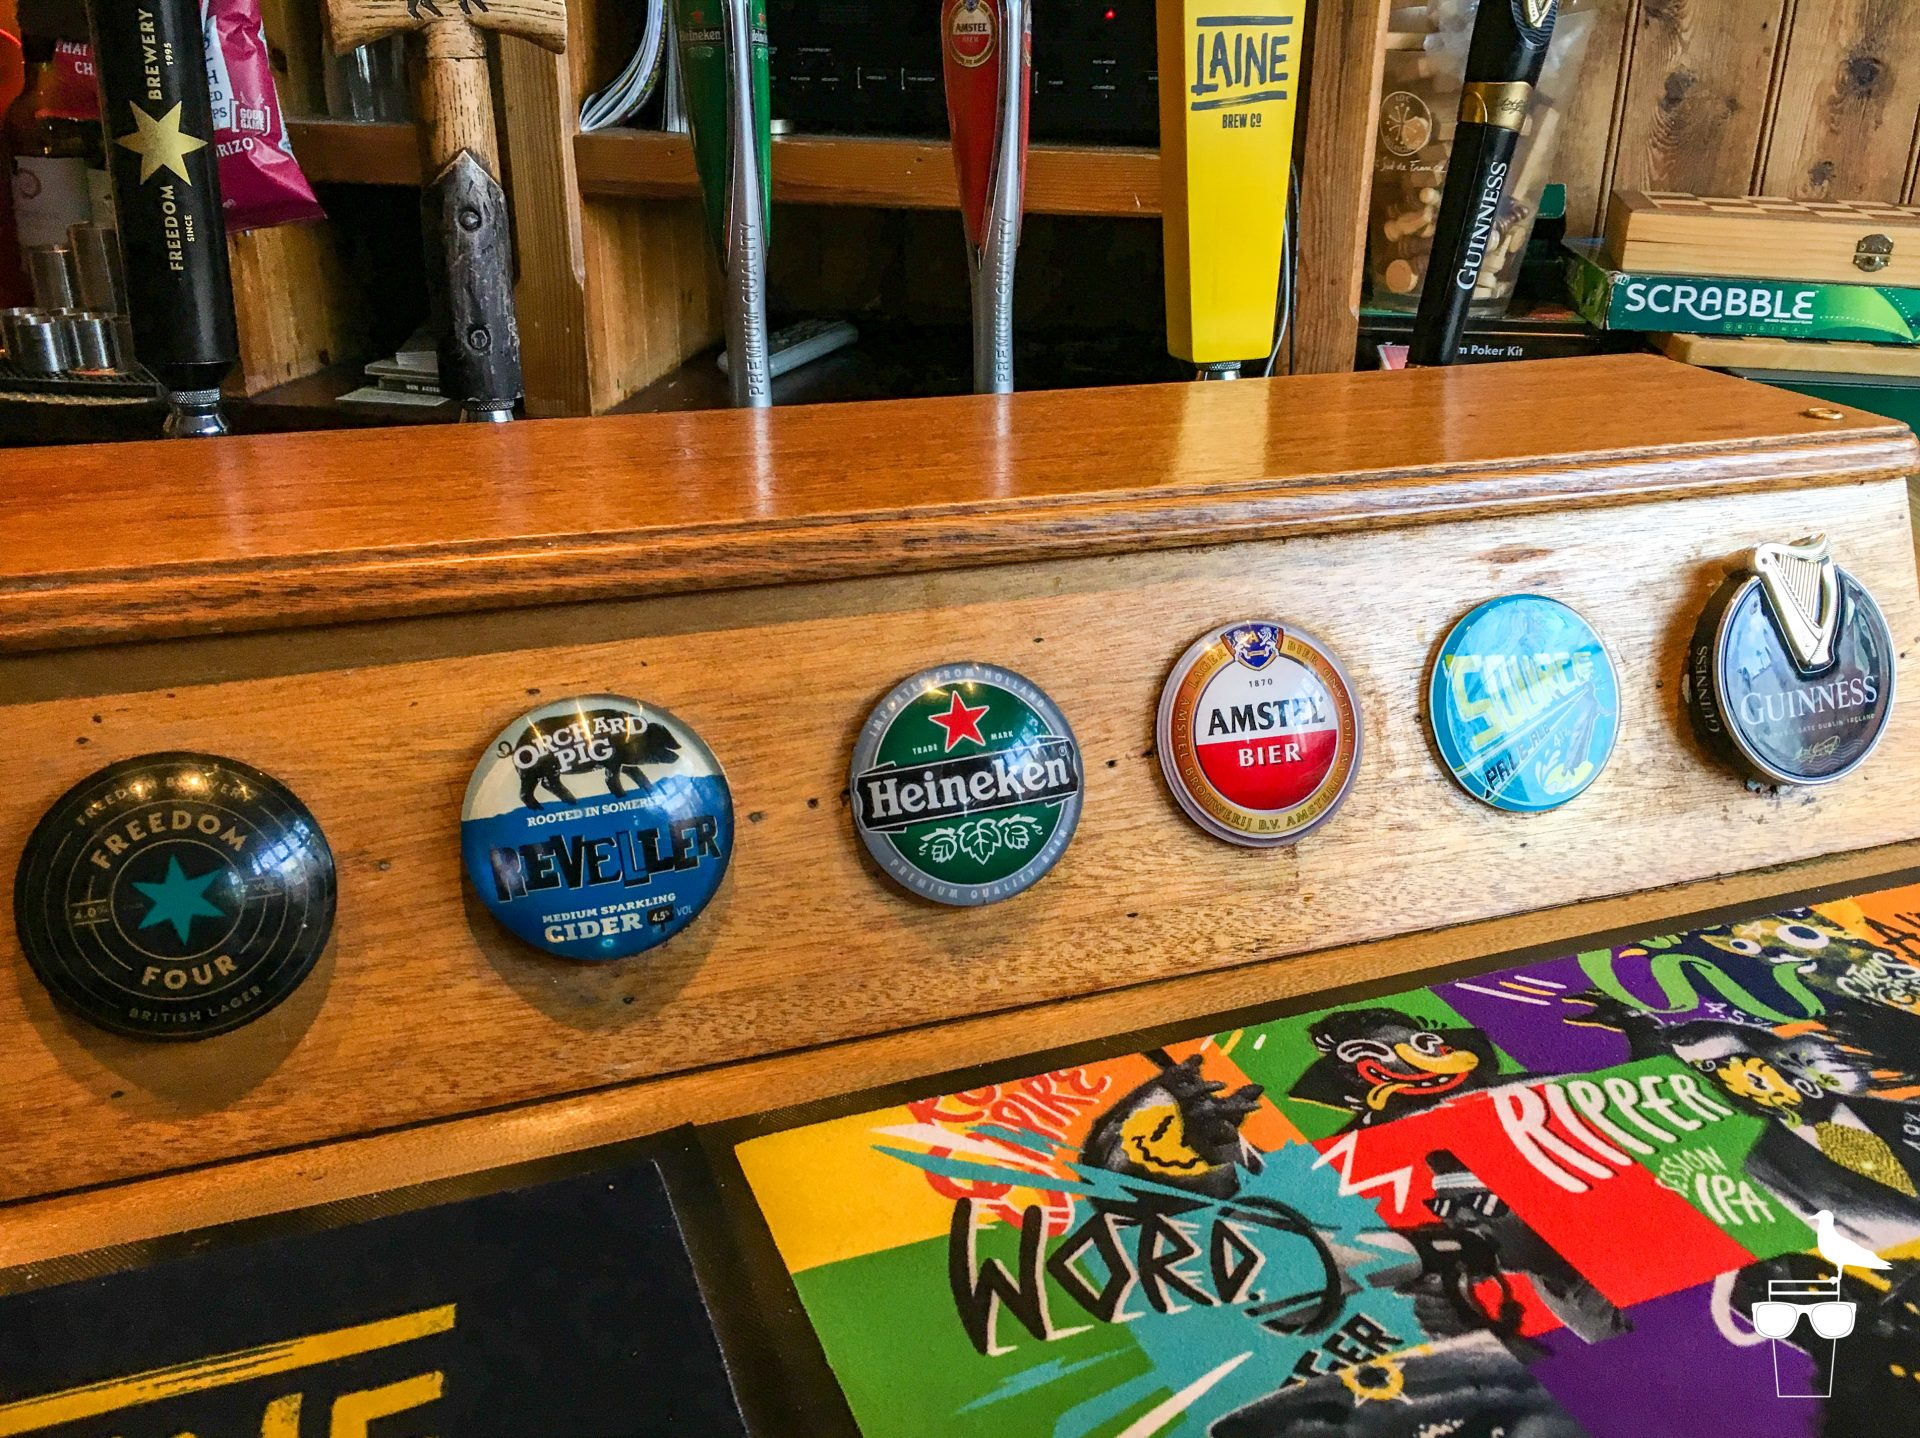 coopers cask hove pub close up of tap options